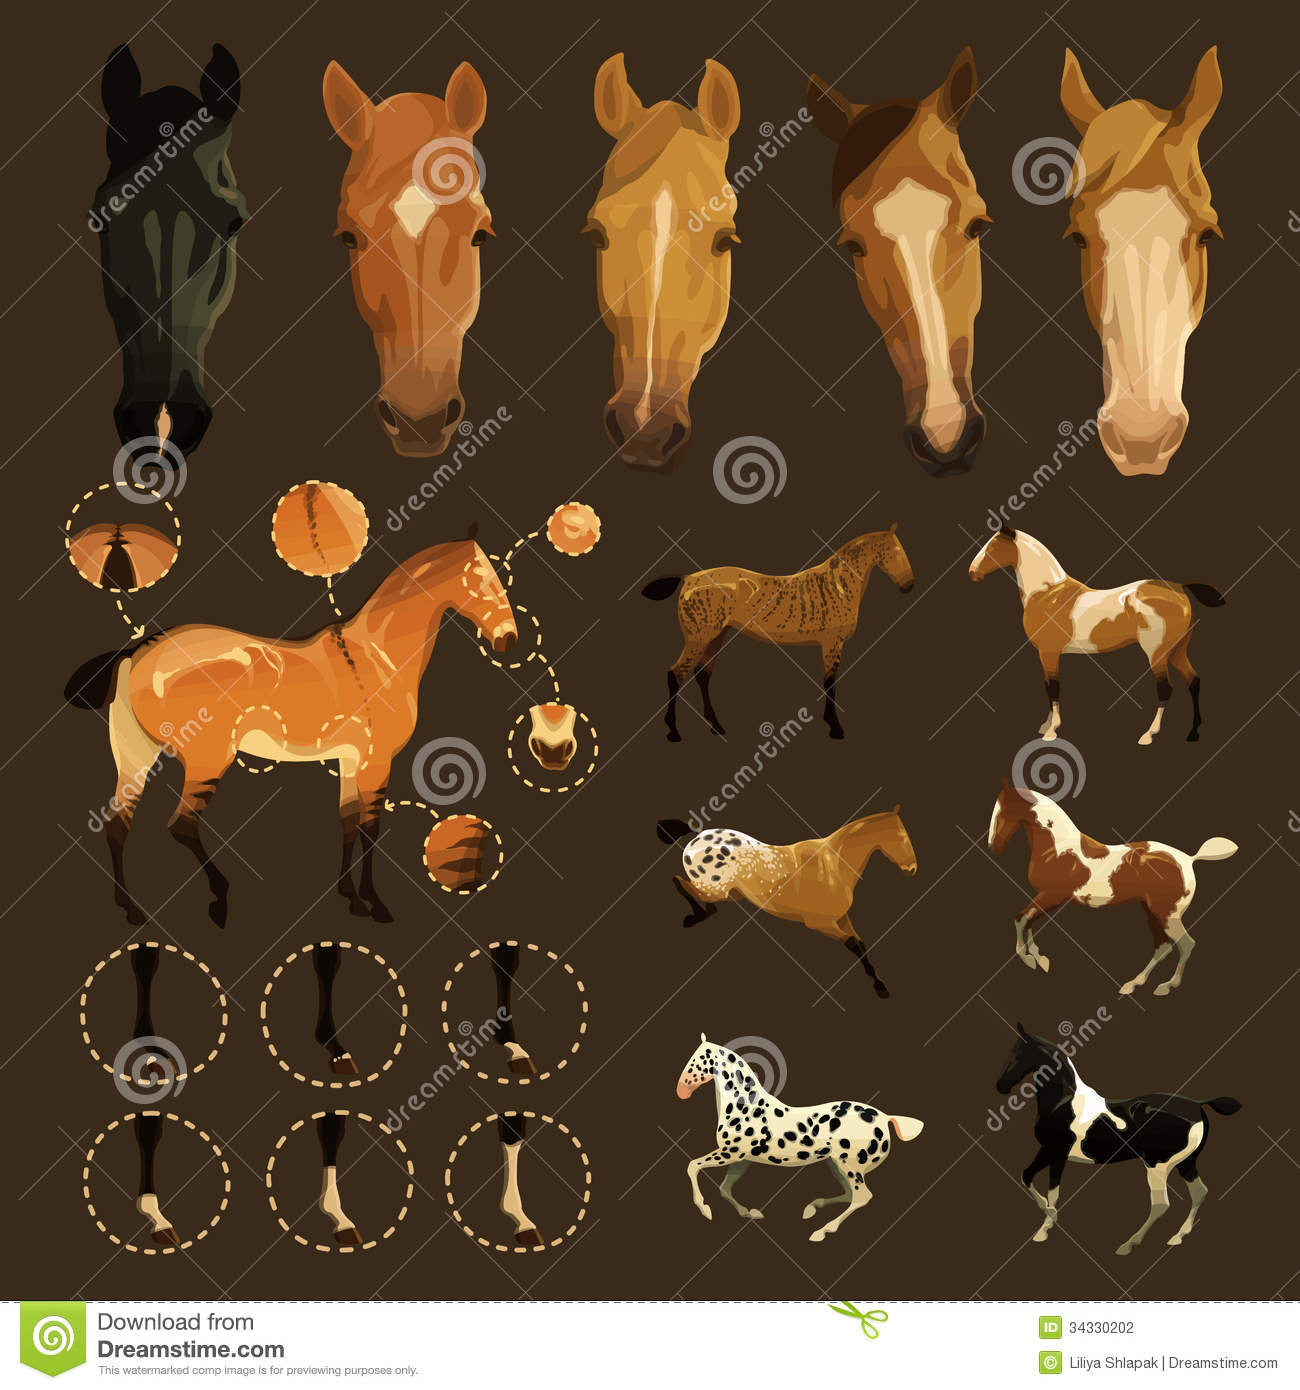 Horse coat colors and markings - photo#13